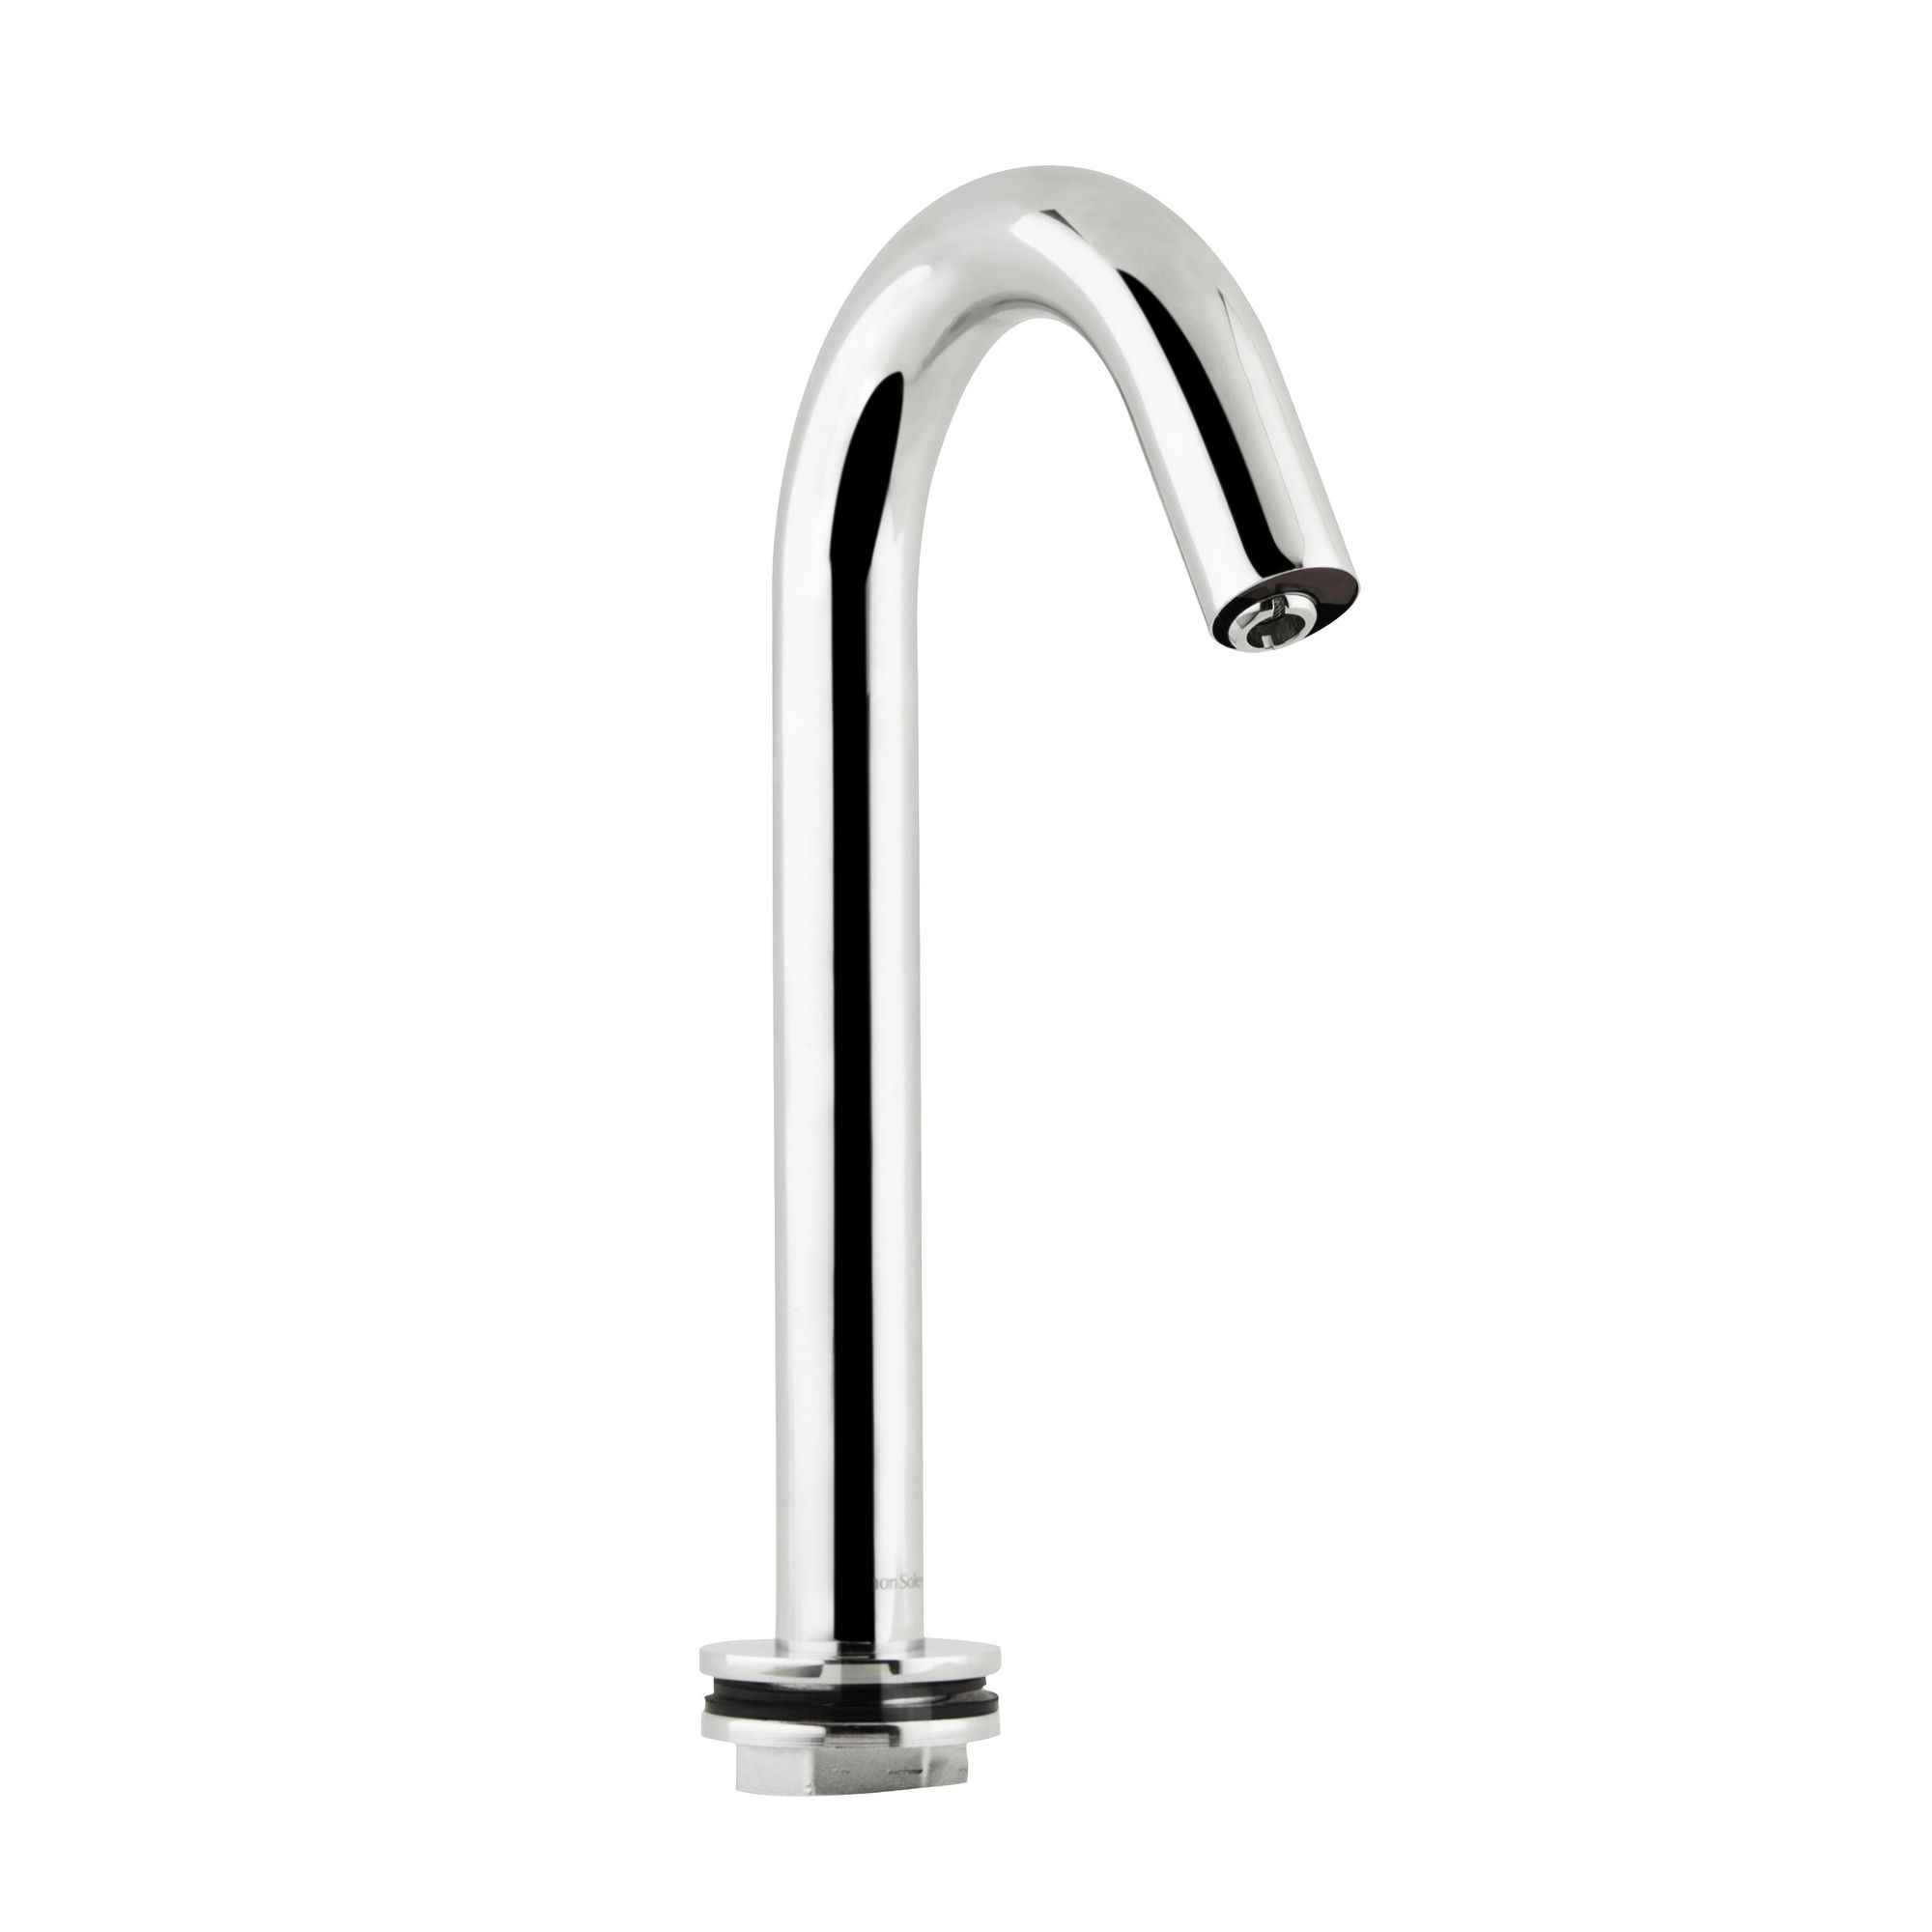 Ramon Soler Soltronic 8101 Electronic Pre-Mixed Basin Tap at Tesco Direct